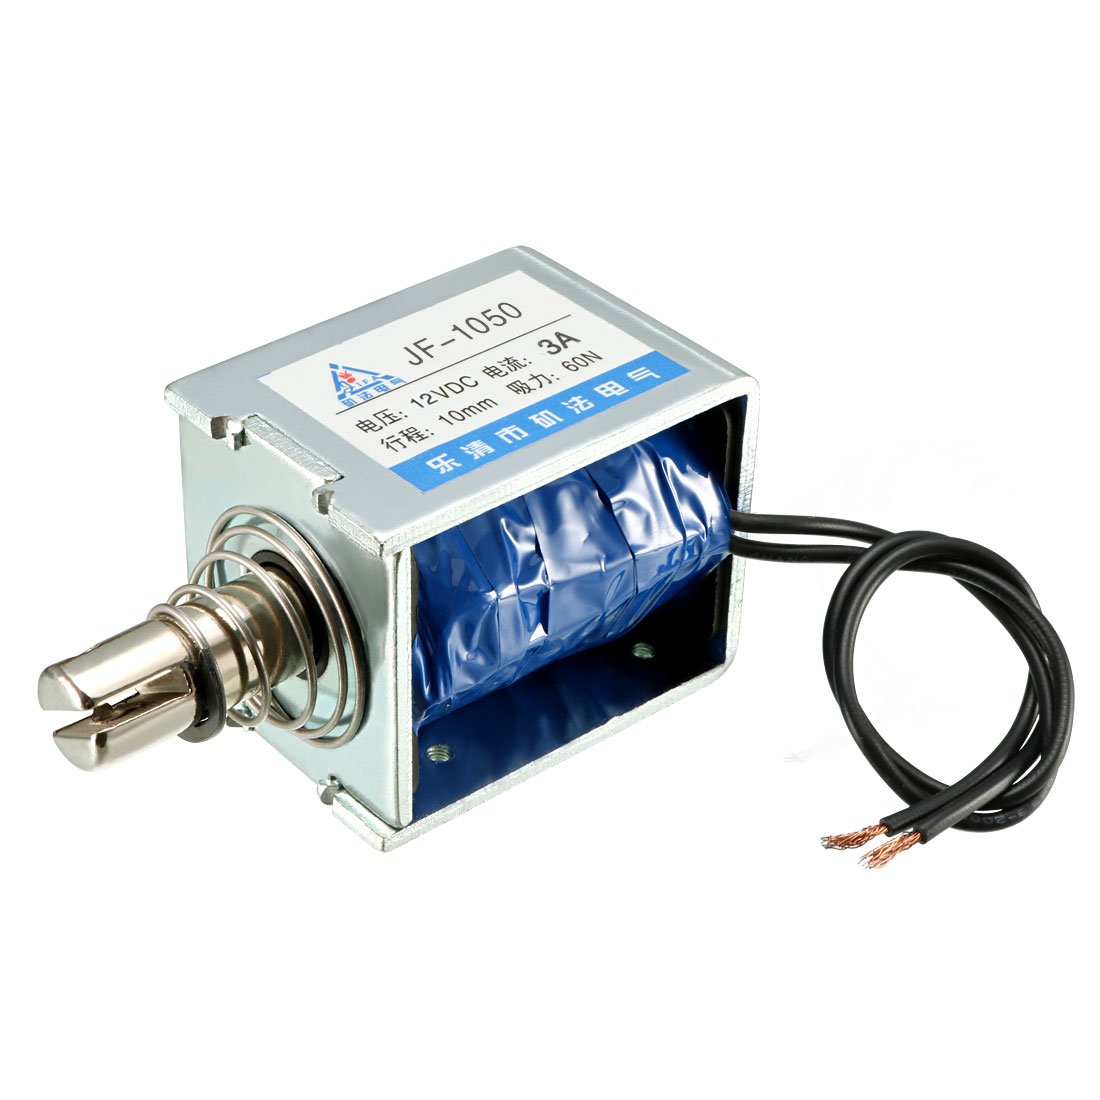 uxcell JF-1050 DC 12V 3A 60N 10mm Pull Type Open Frame Linear Motion Solenoid Electromagnet